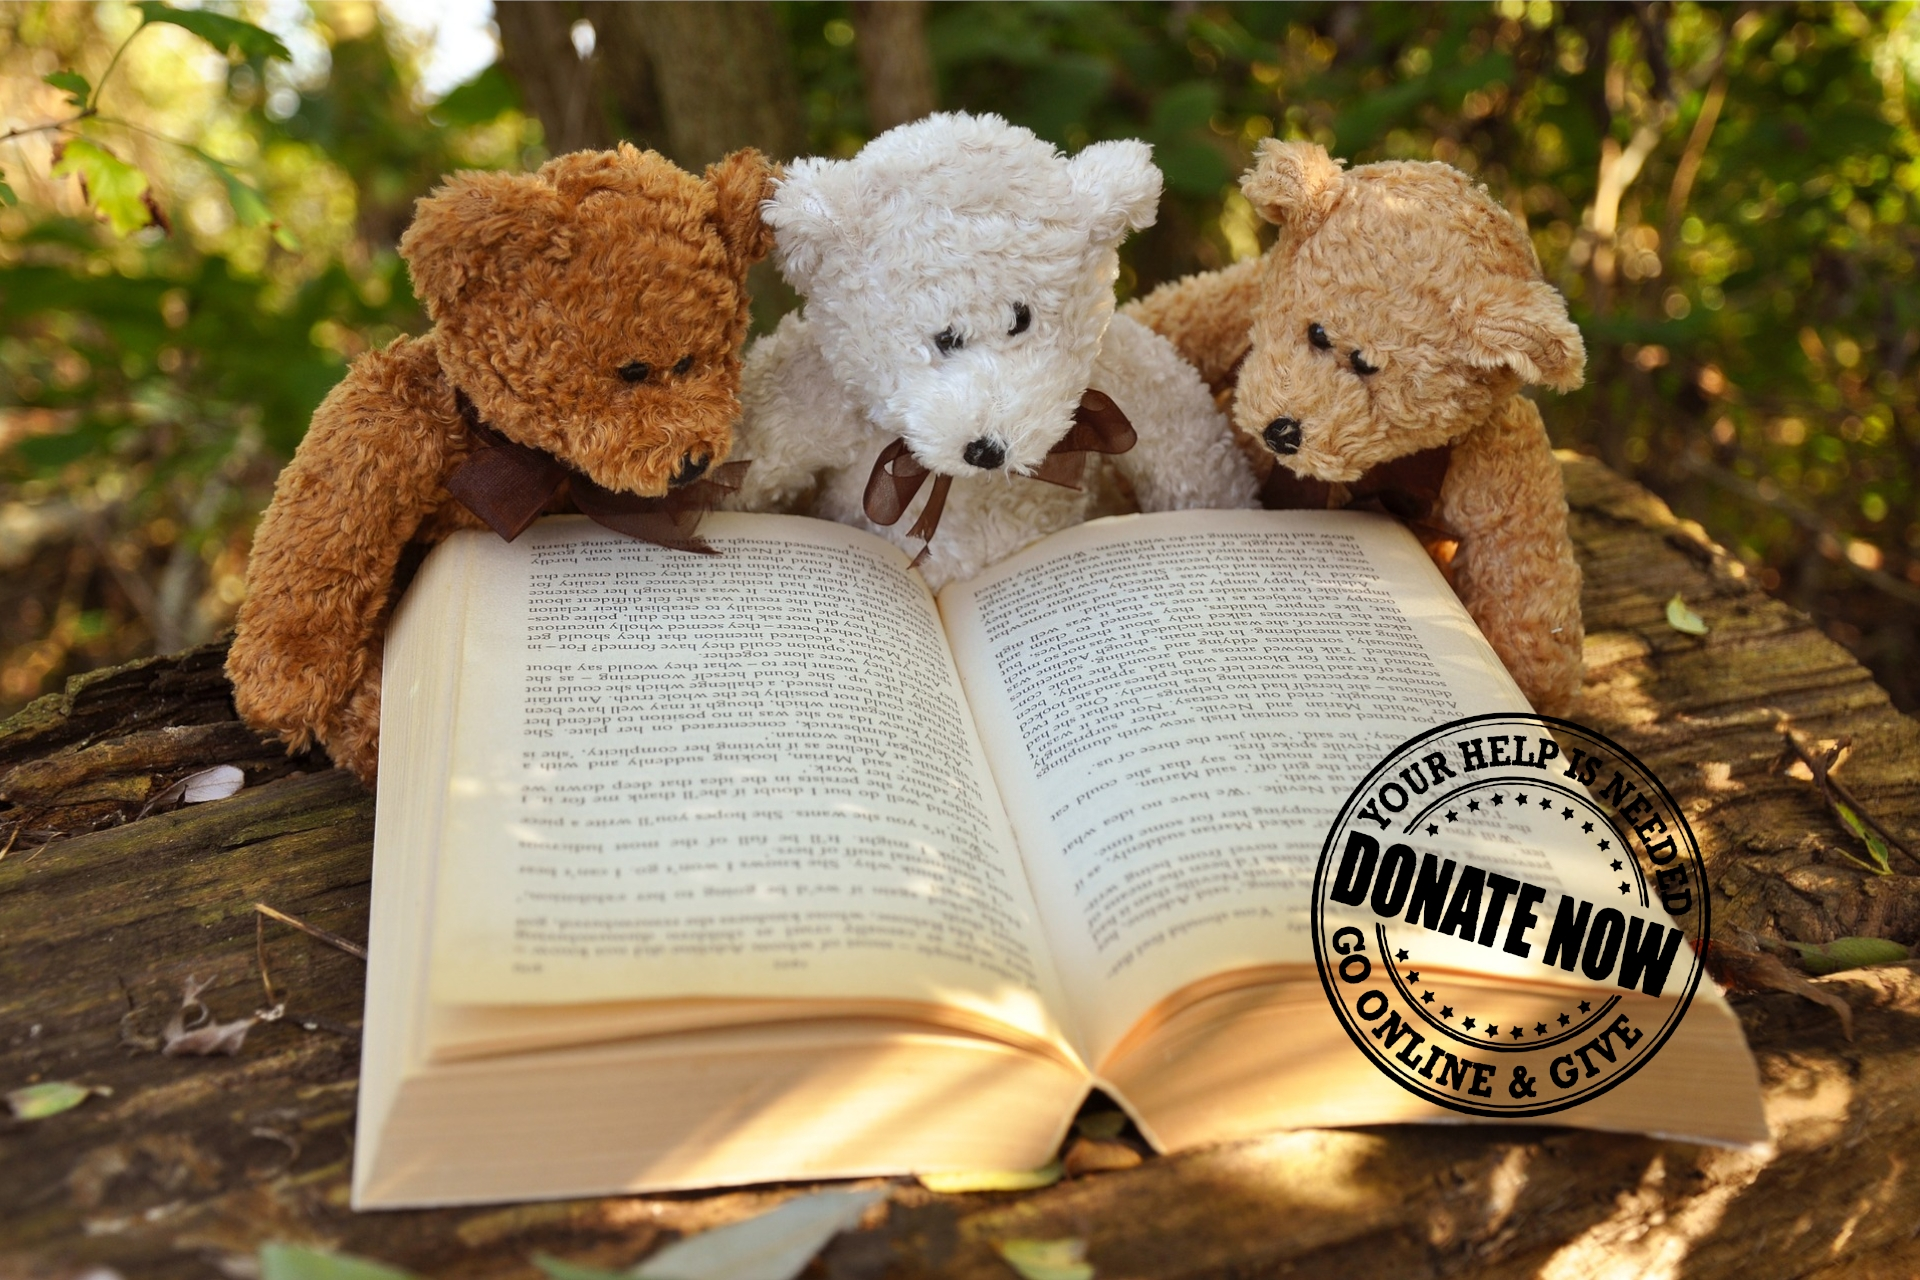 Win an Author Visit While Fundraising for the National Literacy Trust